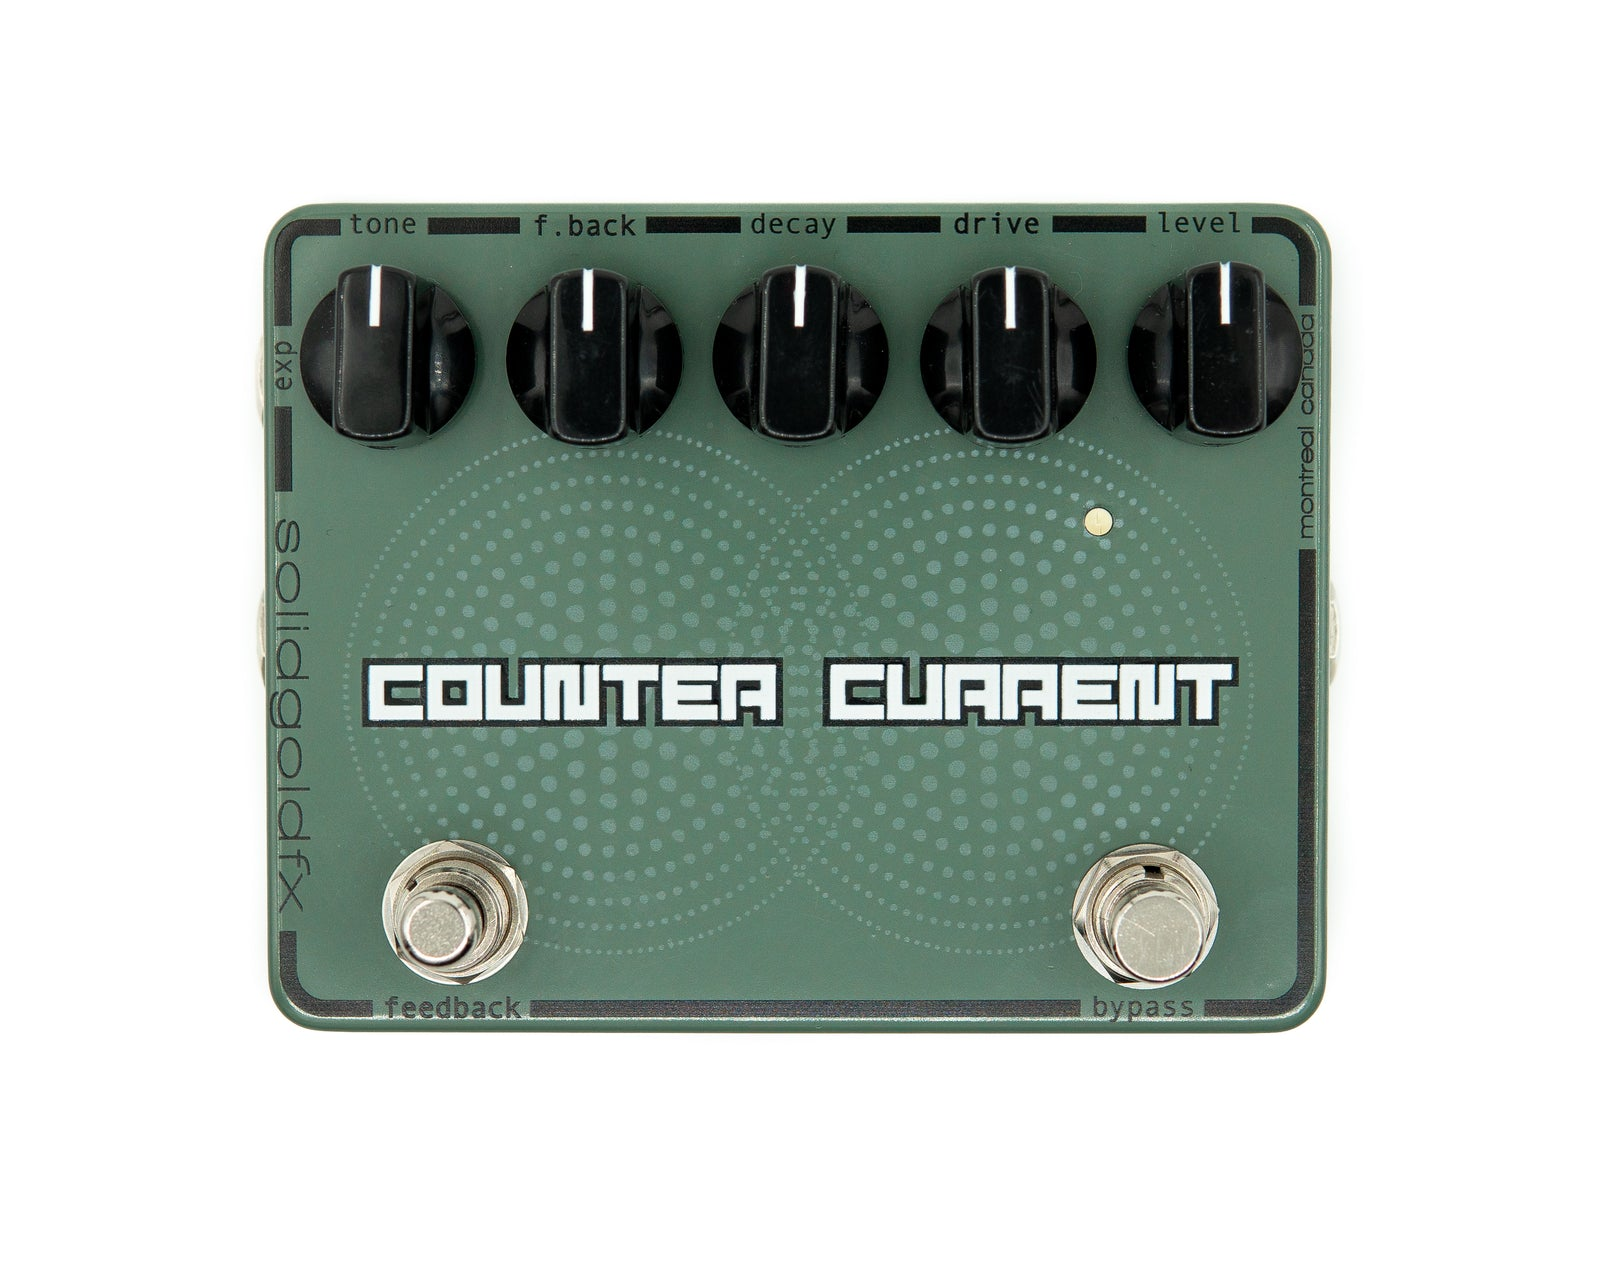 COUNTER CURRENT - REVERB / MOMENTARY FEEDBACKER